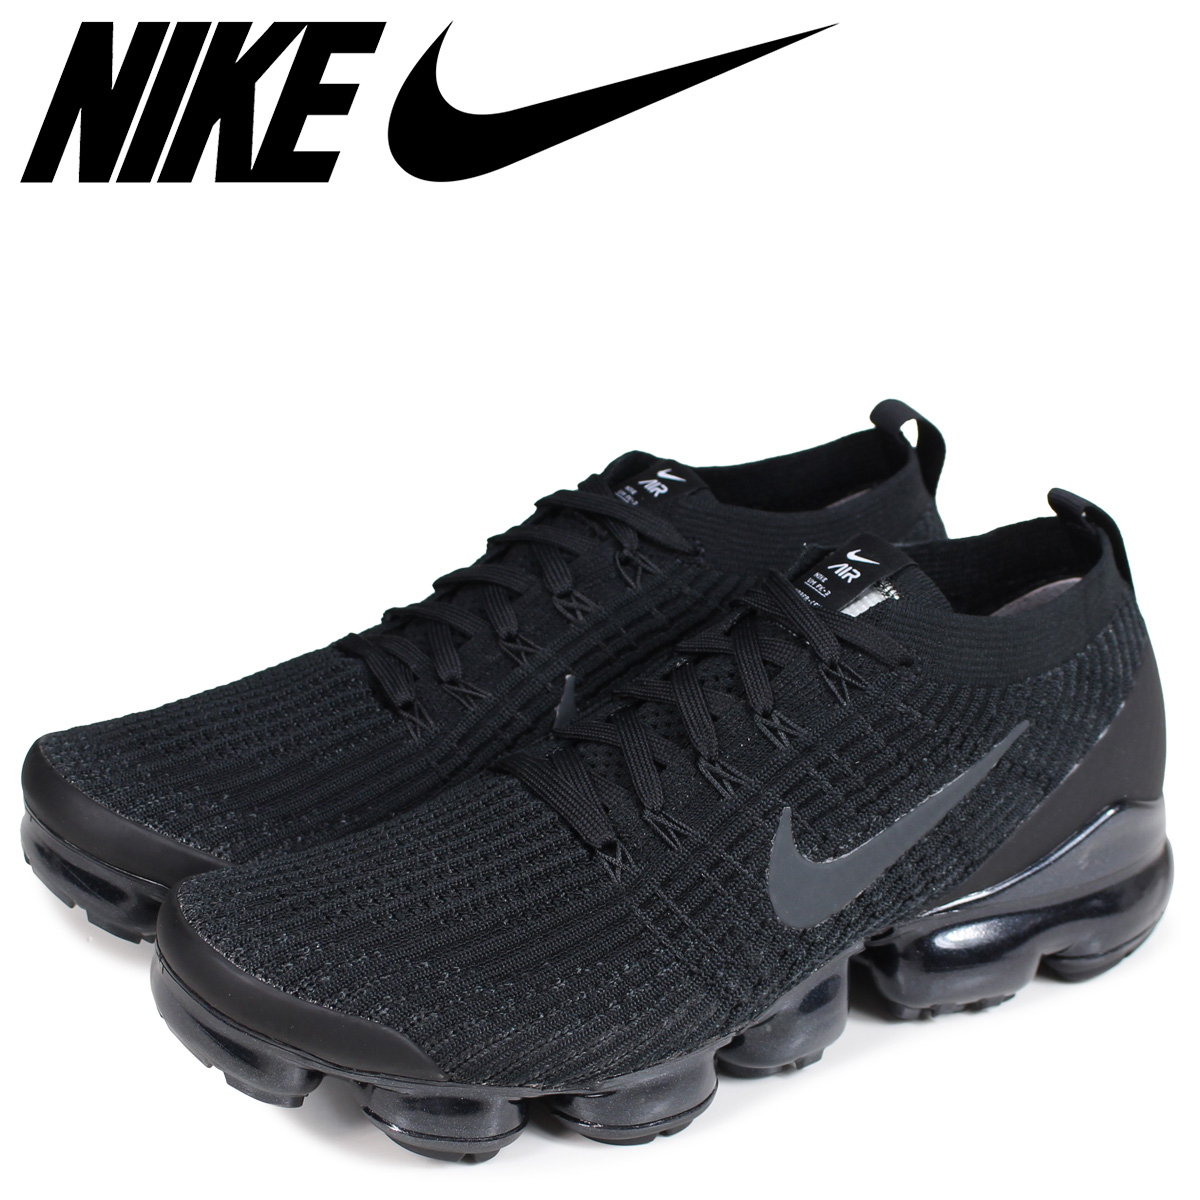 new arrival c9813 fc5cd NIKE Nike air vapor max fried food knit 3 sneakers men AIR VAPORMAX FLYKNIT  3 black black AJ6900-004